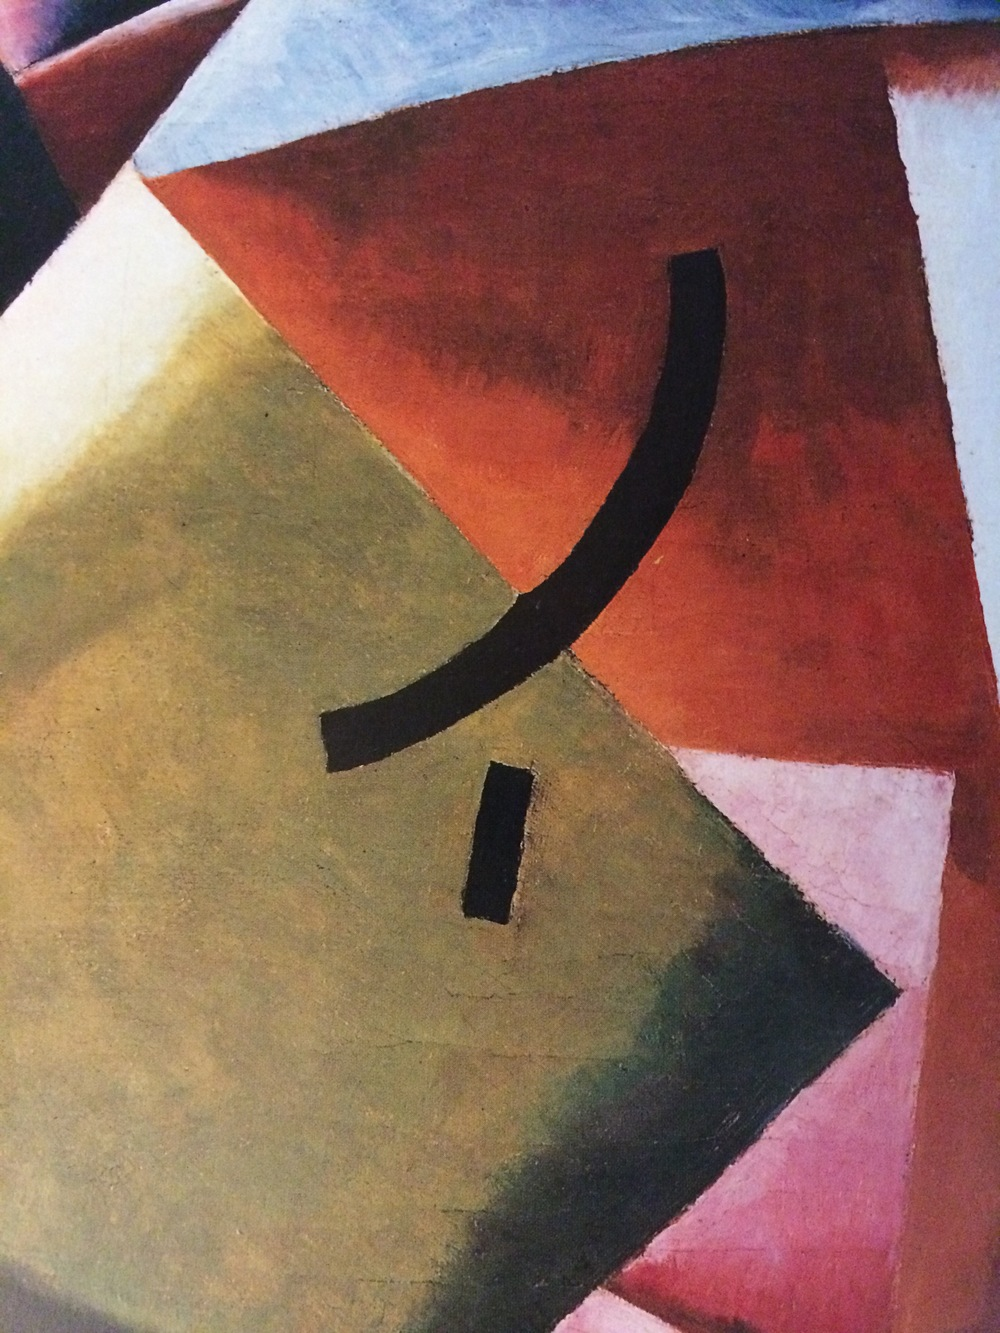 Painterly Architectonics (detail), 1918, oil on canvas, 22 7/8 x 22 1/8 inches, Costakis Collection, Athens.